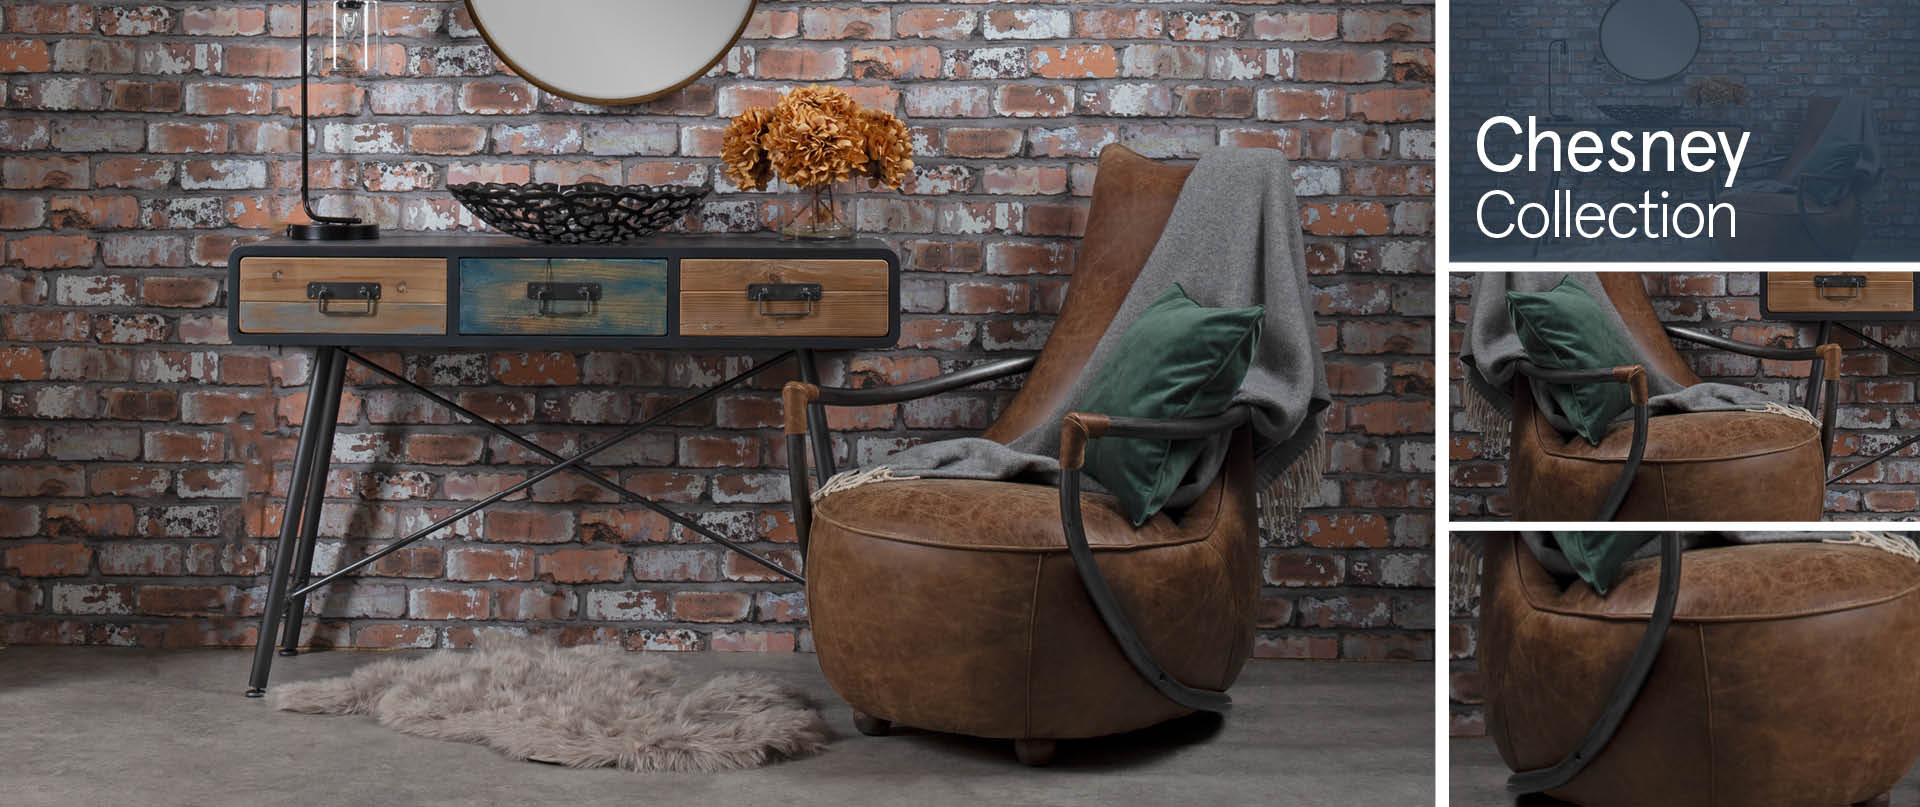 Chesney Chairs and Footstools Ranges